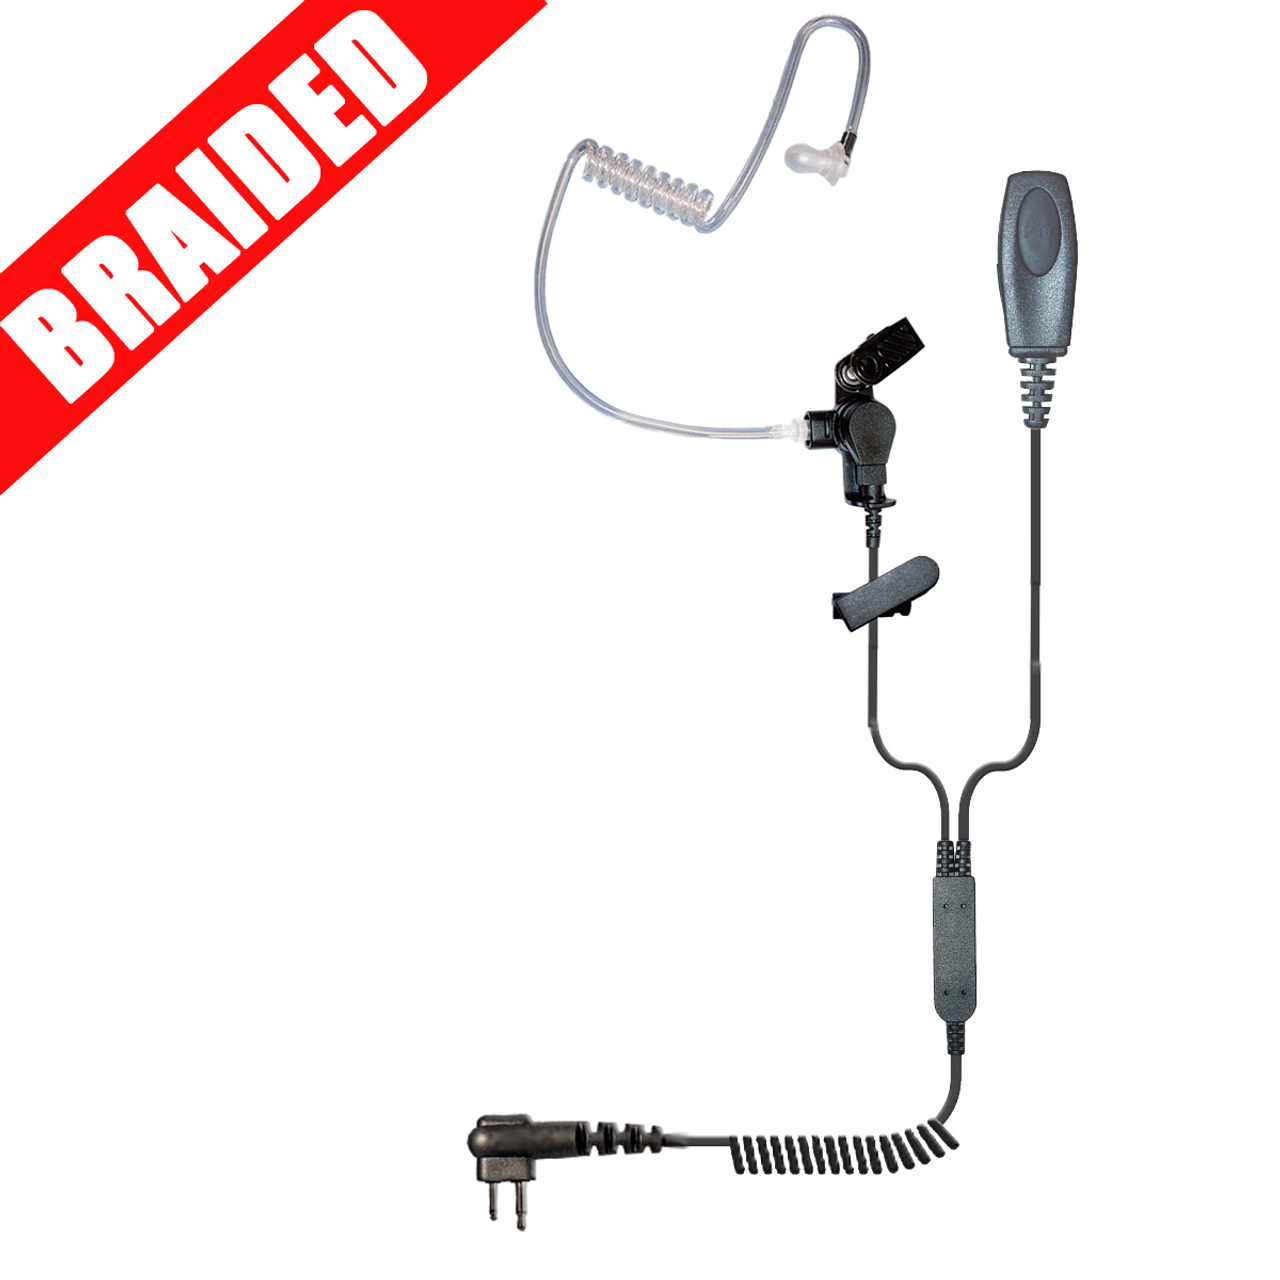 Patriot 2-Wire Surveillance Kit with Braided Cable